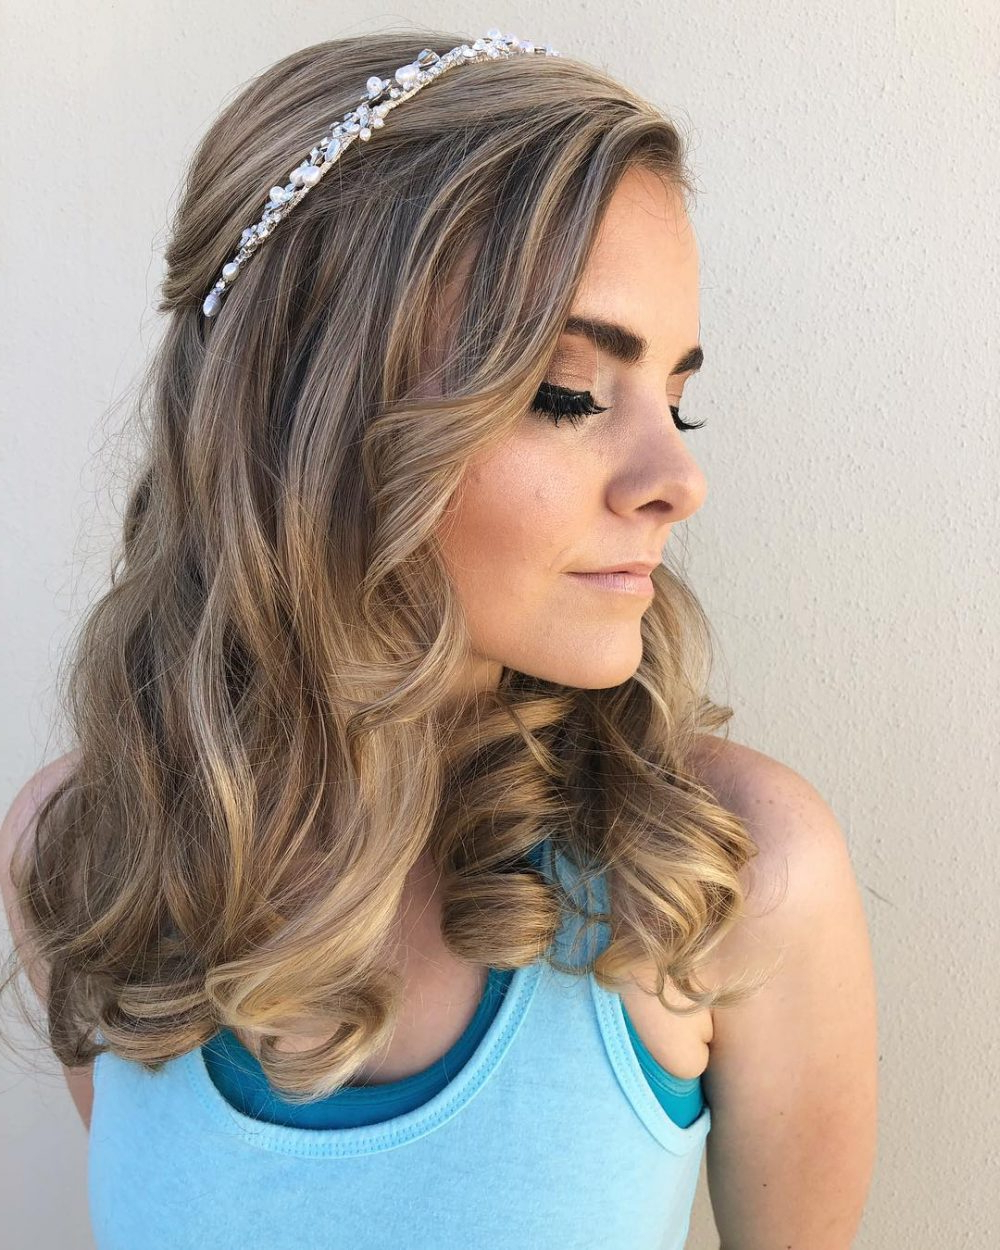 Prom Hairstyles For Medium Length Hair – Pictures And How To's Regarding Popular Medium Hairstyles For Homecoming (View 13 of 20)